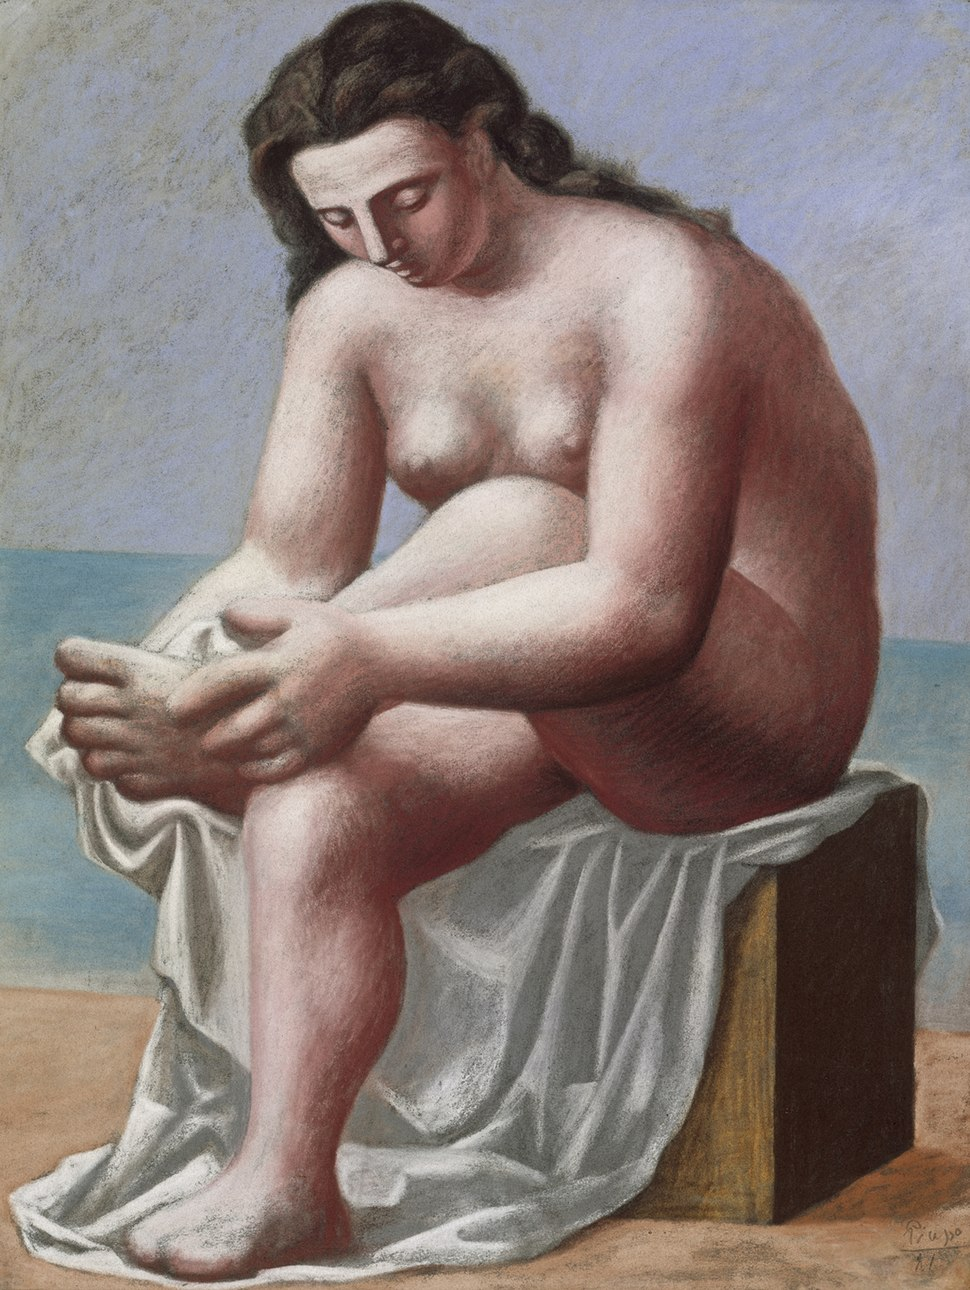 Pablo Picasso, 1921, Nu assis s'essuyant le pied (Seated Nude Drying her Foot), pastel, 66 x 50.8 cm, Berggruen Museum